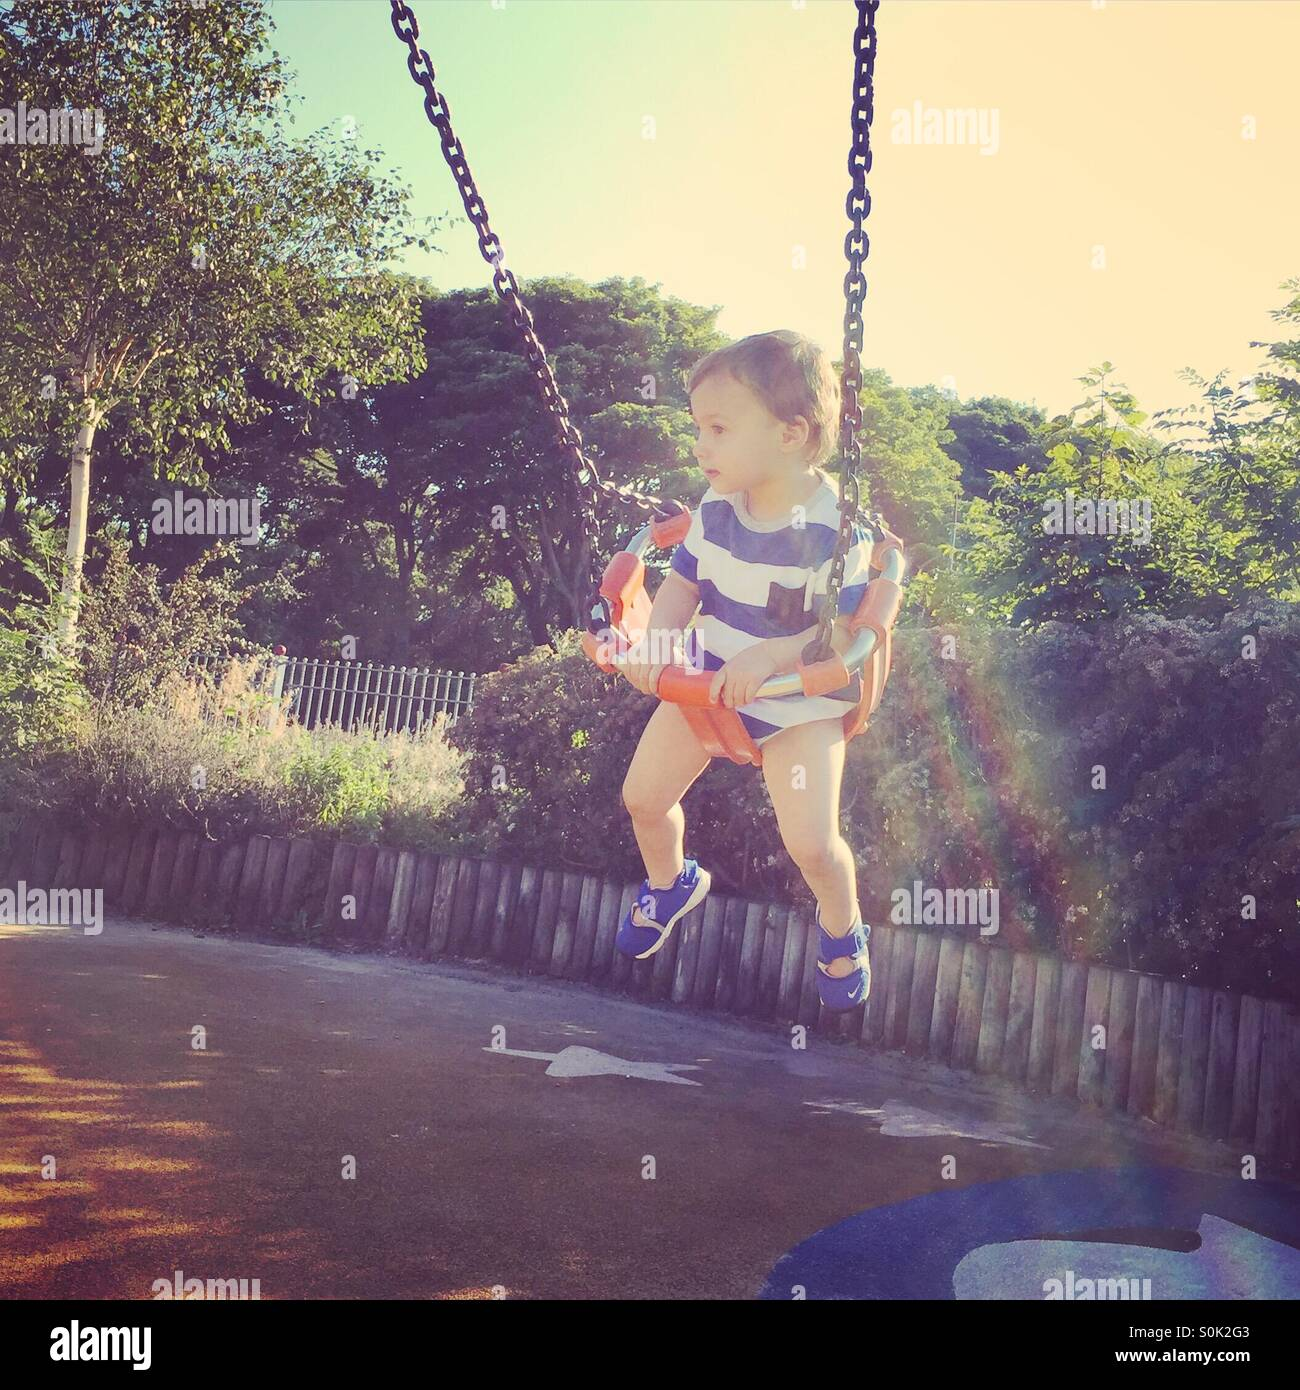 Tout-petit swing in park Photo Stock